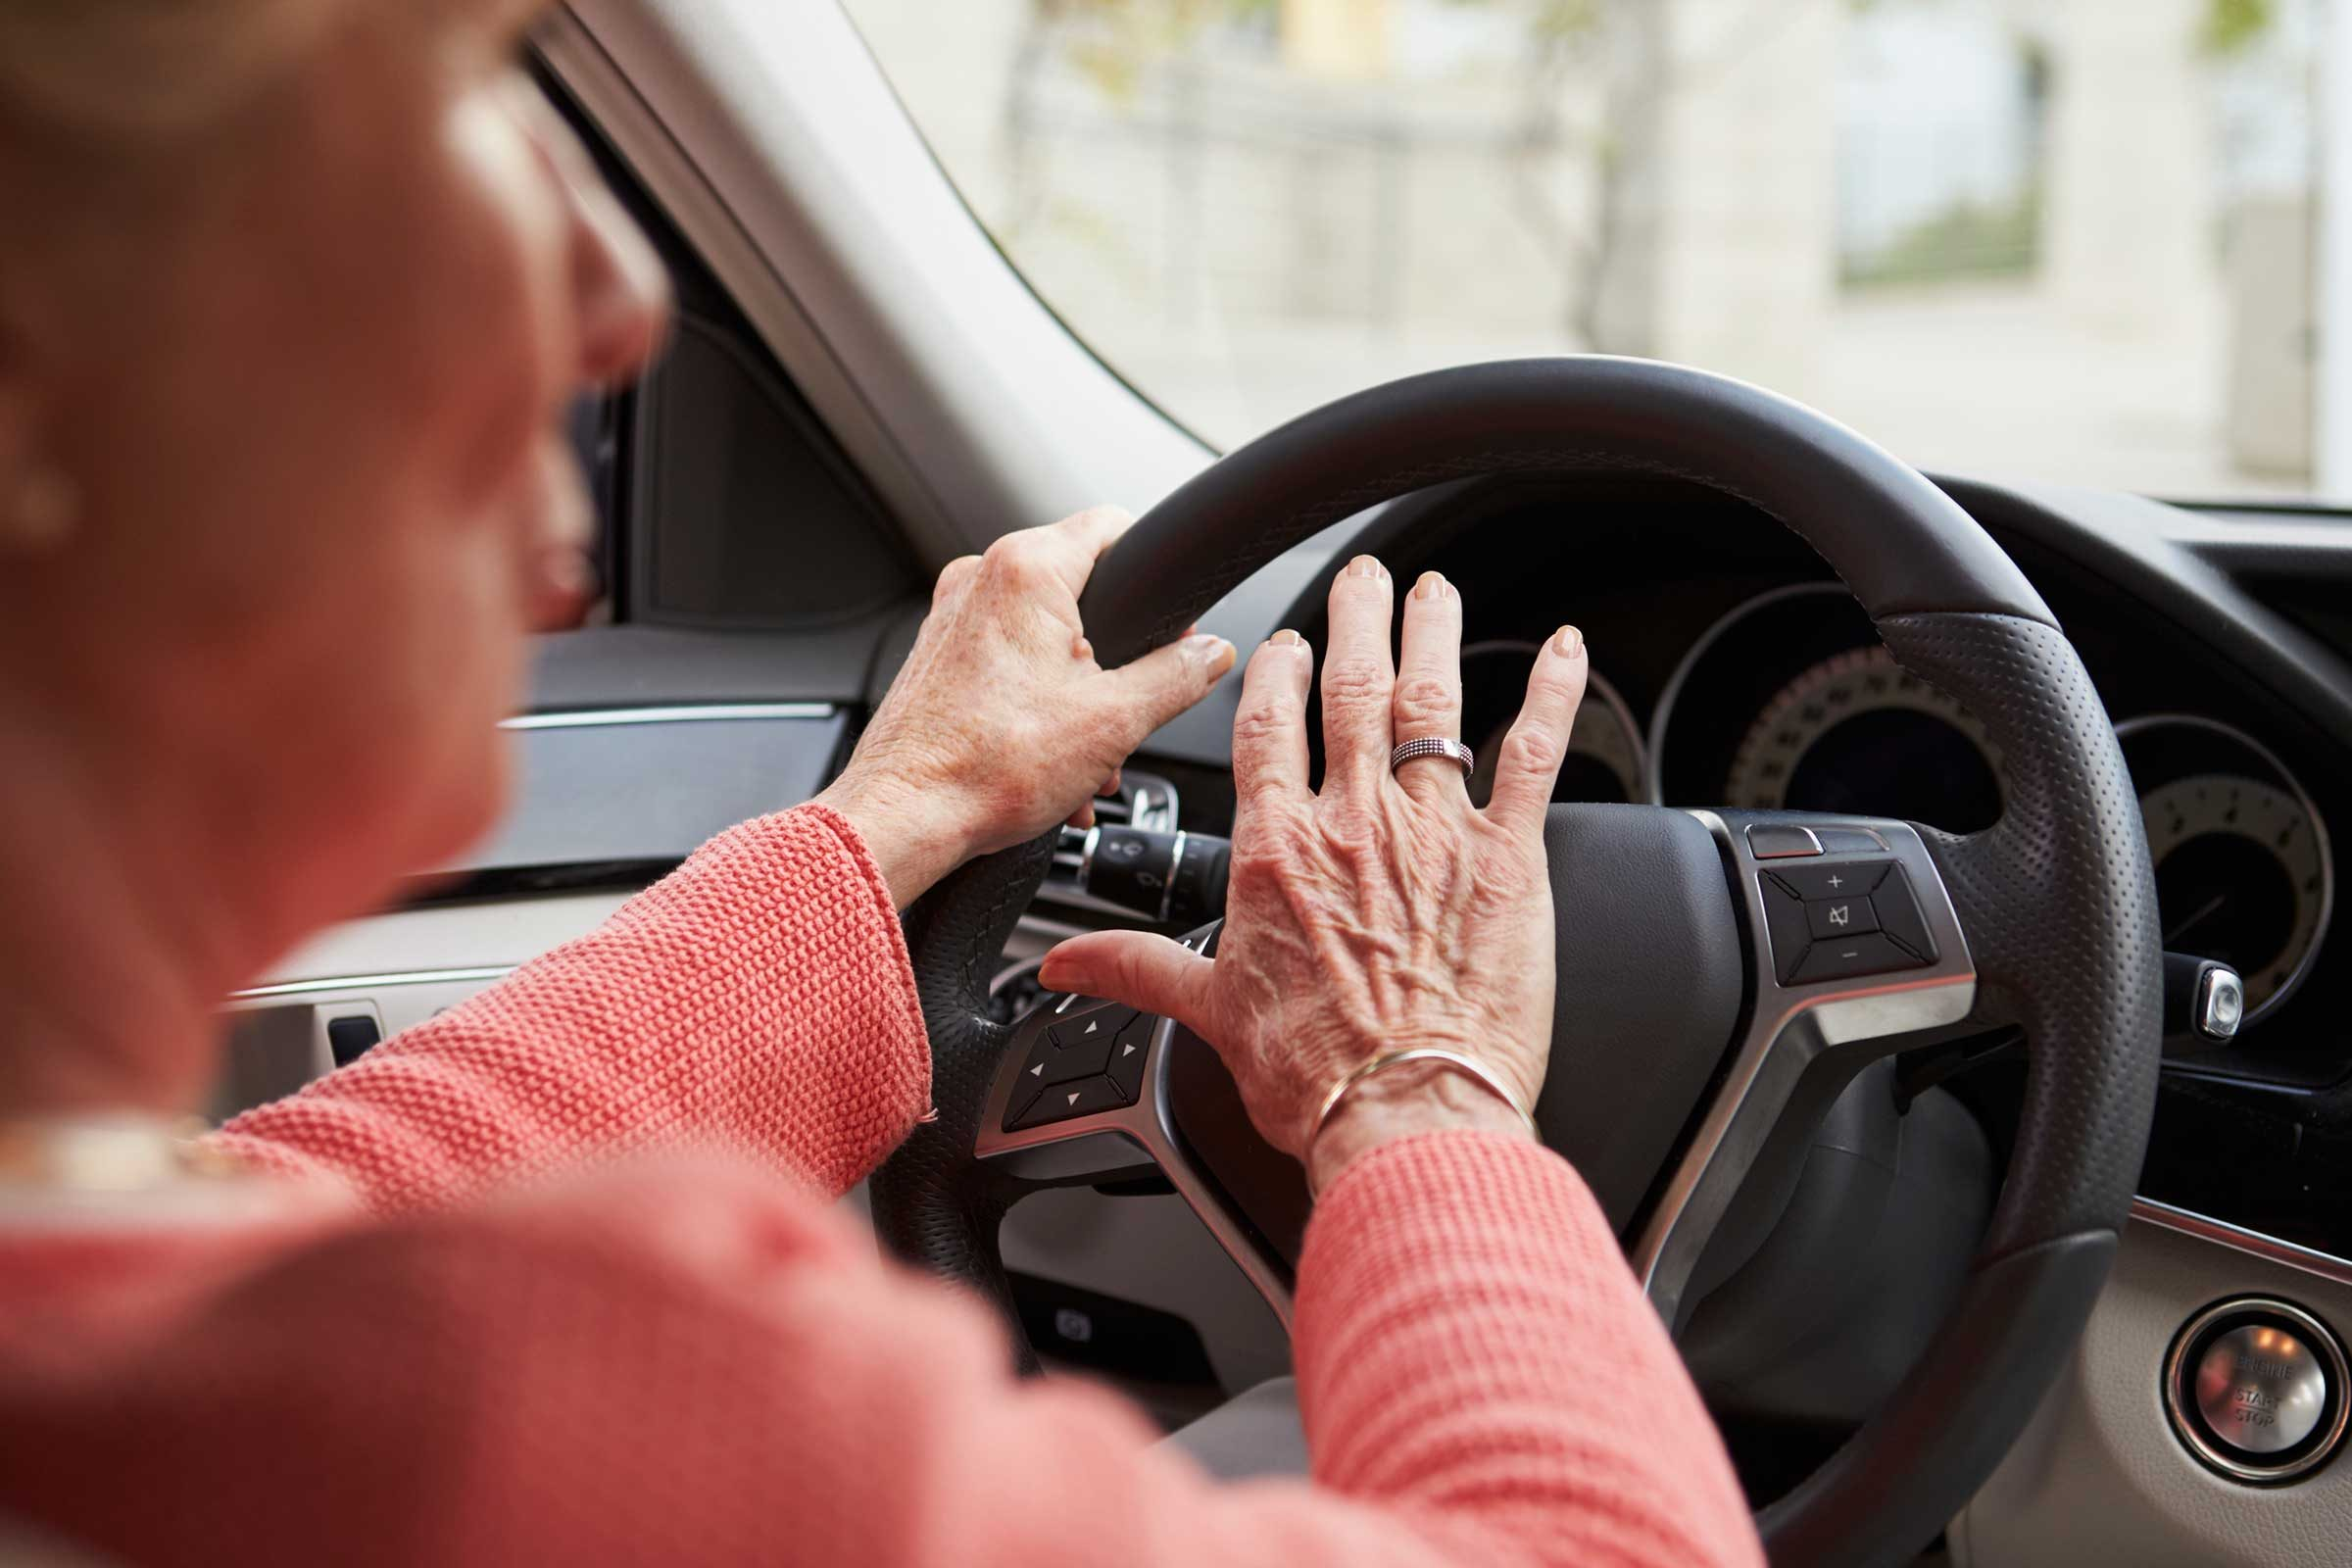 Elderly Drivers When Should They Stop Driving Readers Digest - Car sign meaningsfunny alternative road signs car keys